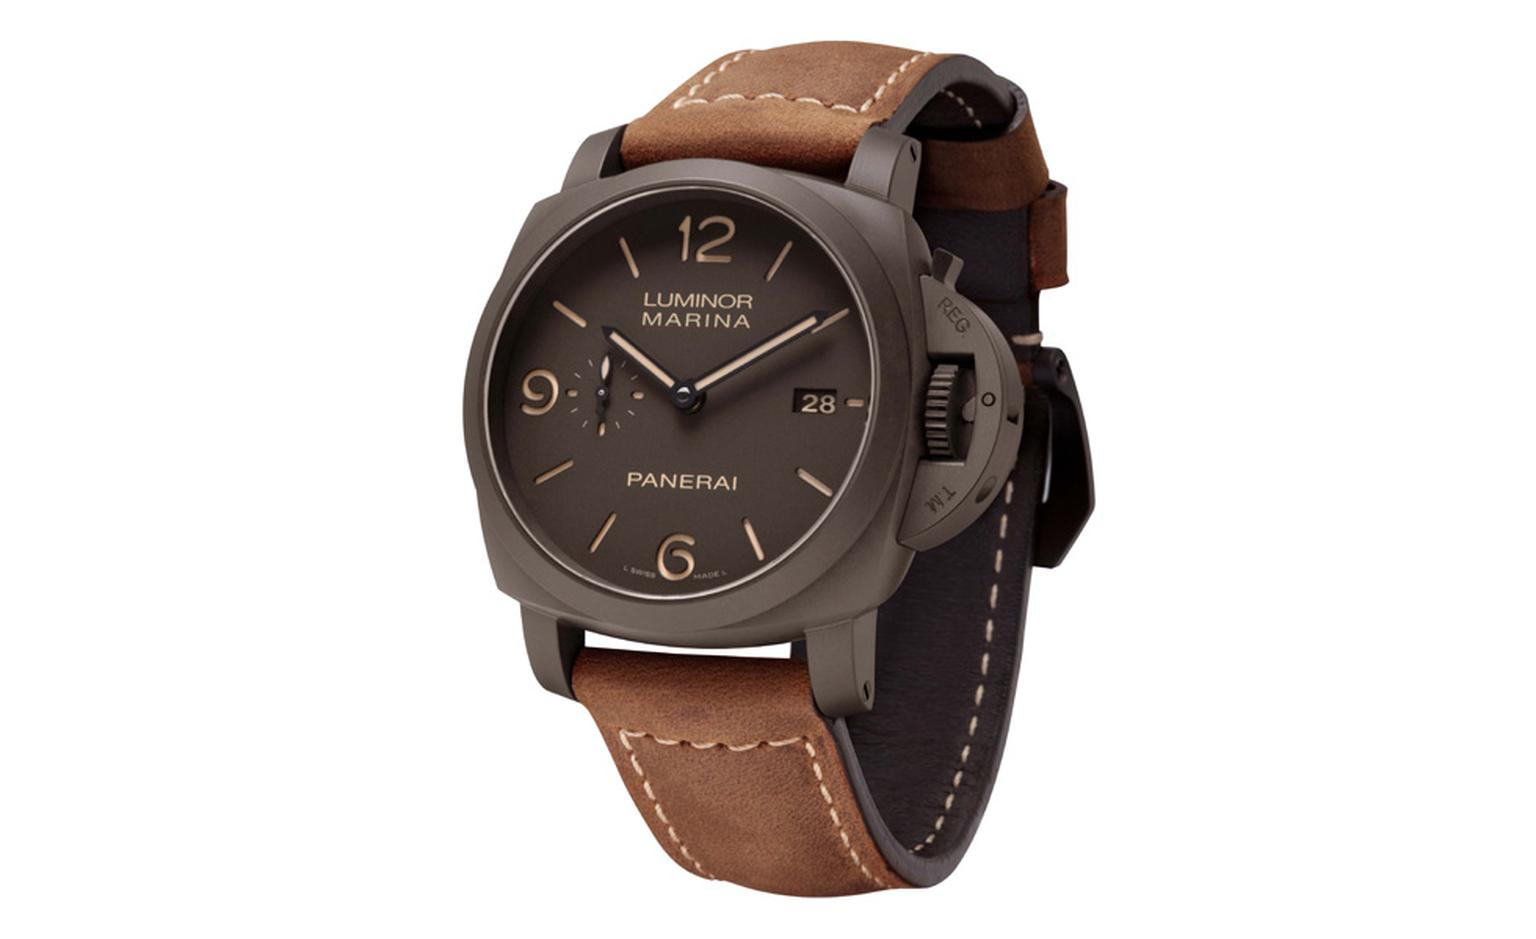 Panerai Luminor Marina 1950 3 Days with the in-house manufactured P.9000 movement in a case made of coloured Panerai Composite ®, a new synthetic ceramic.